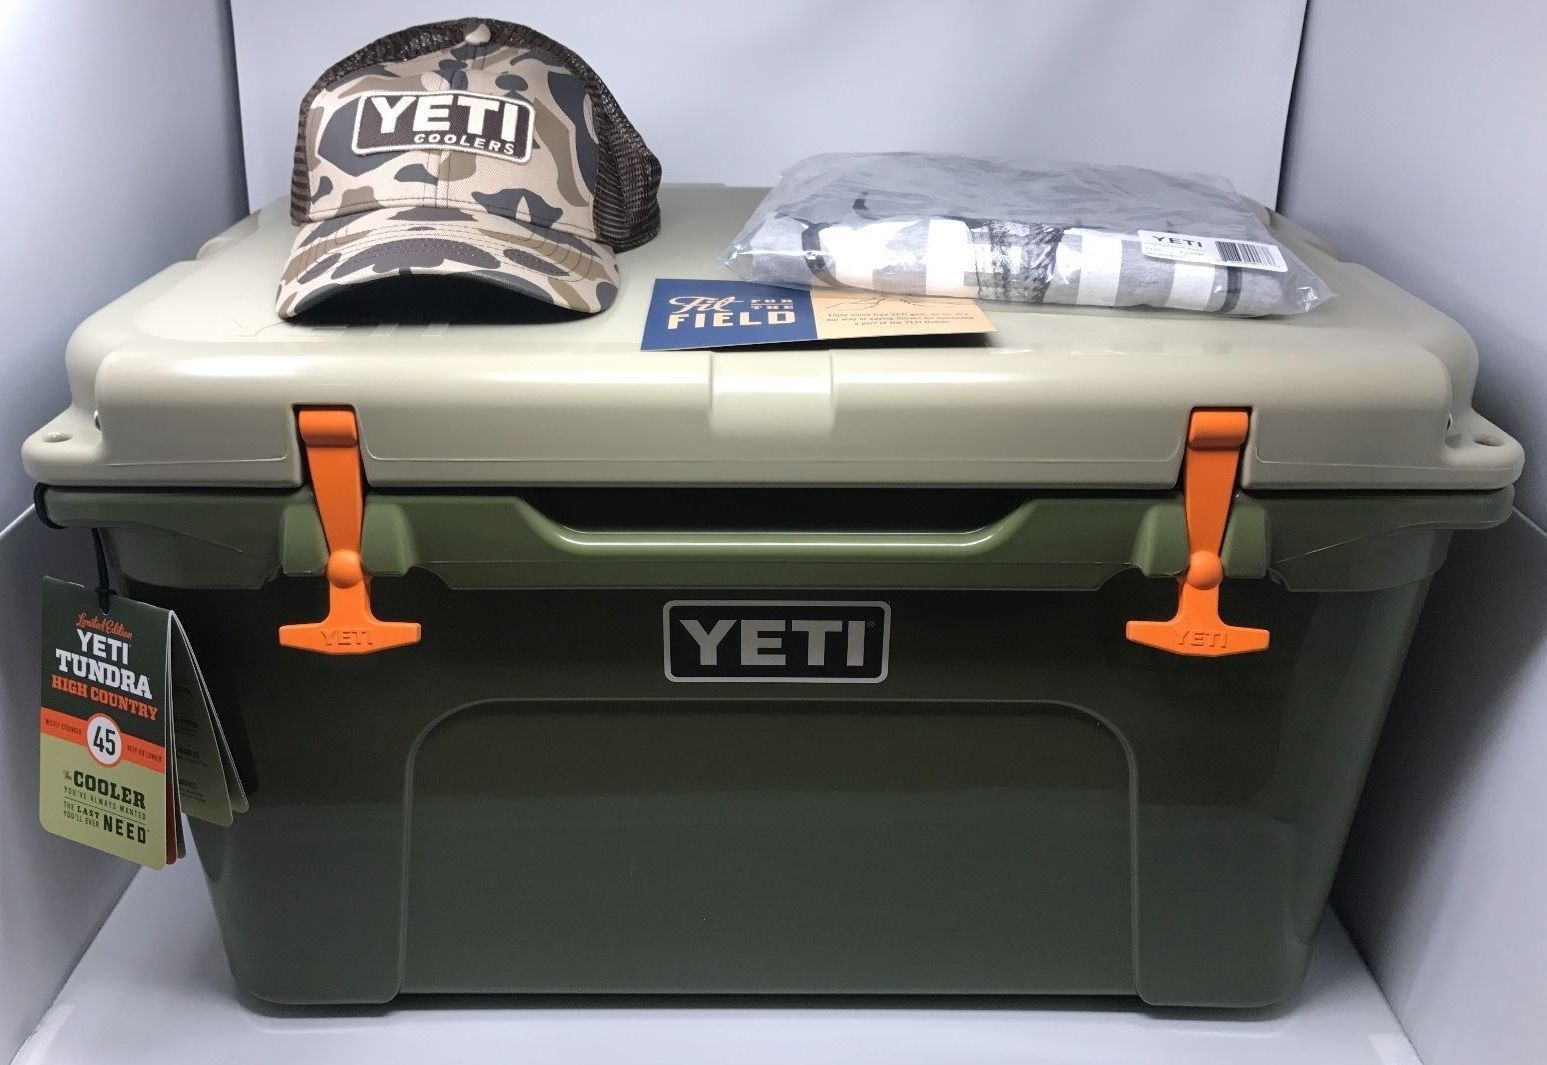 Camping Ice Boxes And Coolers 181382 New Yeti Tundra 45 Quart High Country Cooler Shirt Hat Rare Limited Edition Buy It Yeti Tundra Yeti Tundra 45 Cooler